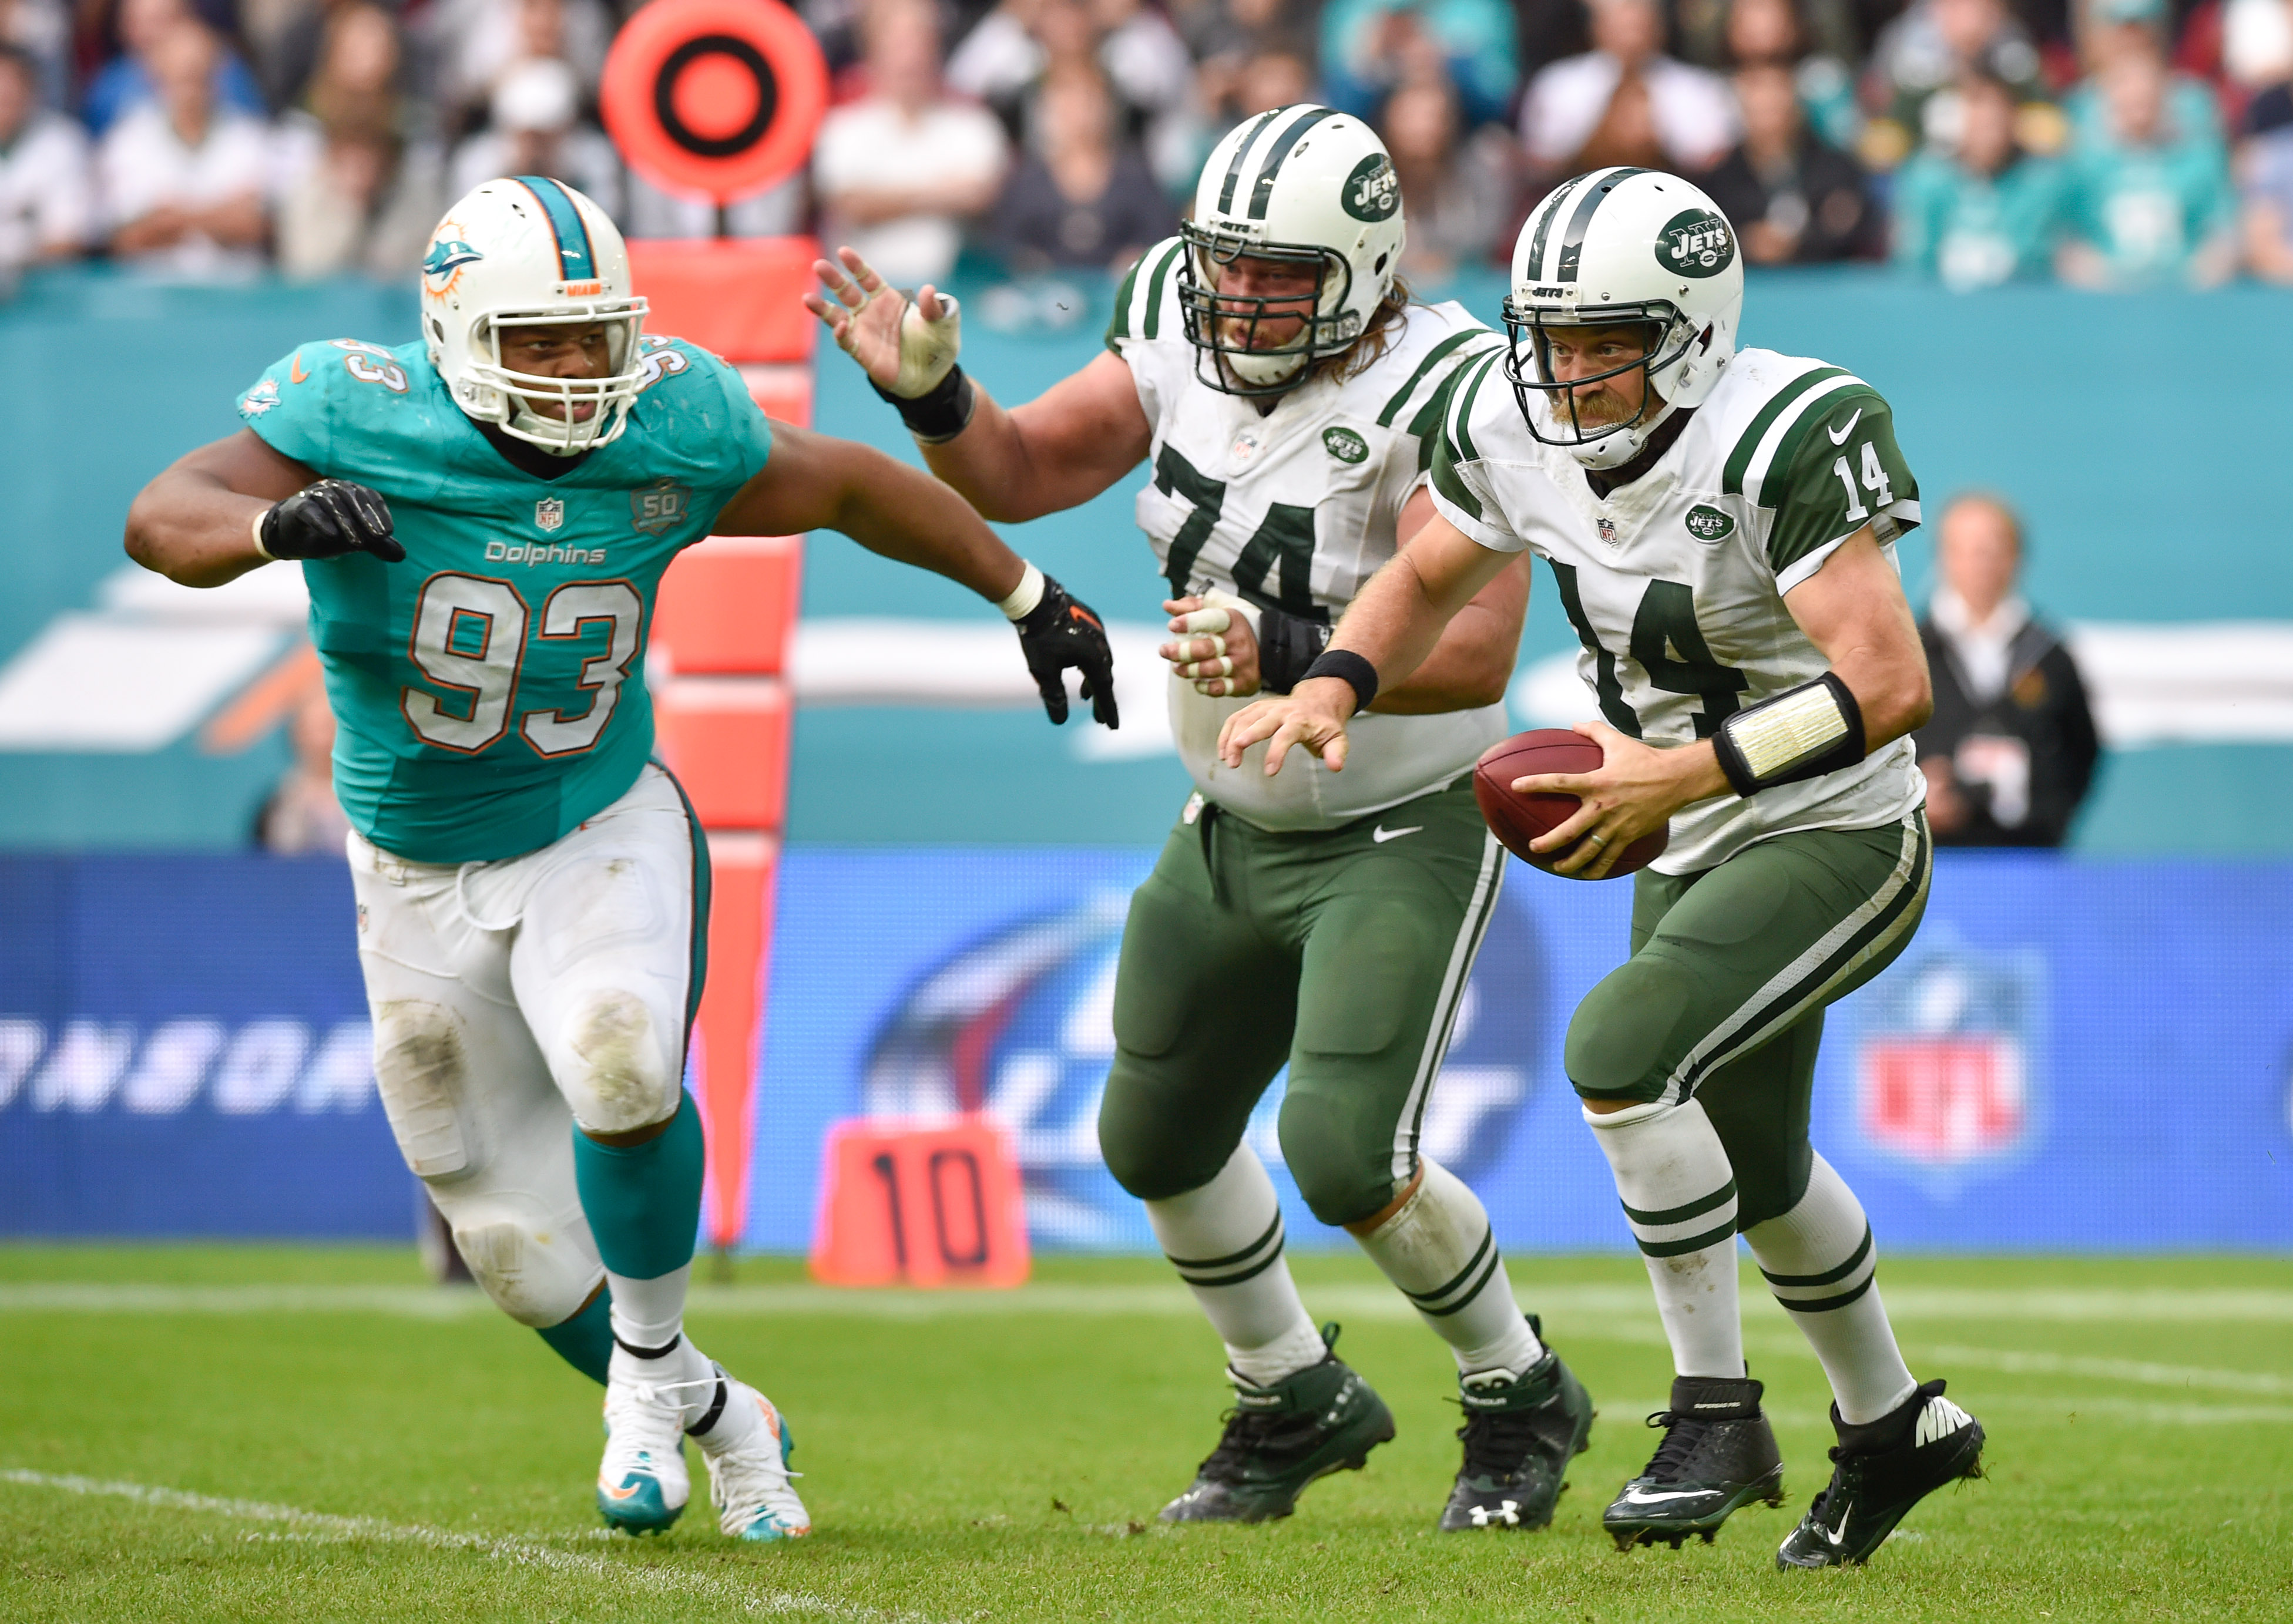 8842766-nfl-international-series-new-york-jets-at-miami-dolphins